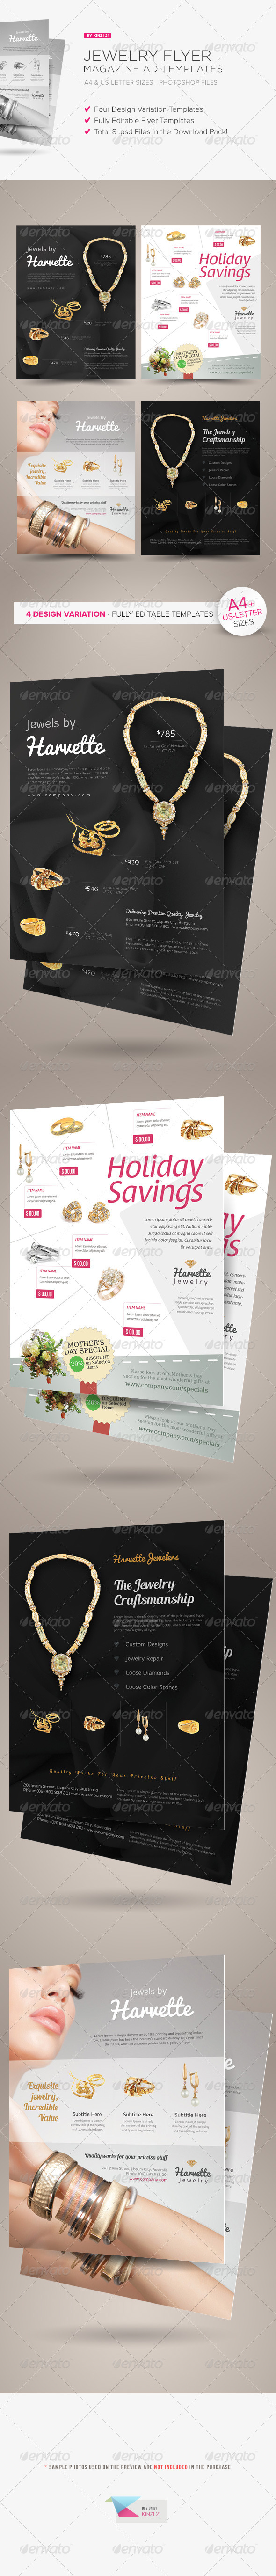 GraphicRiver Jewelry Flyer or Magazine Ad Templates 7008886